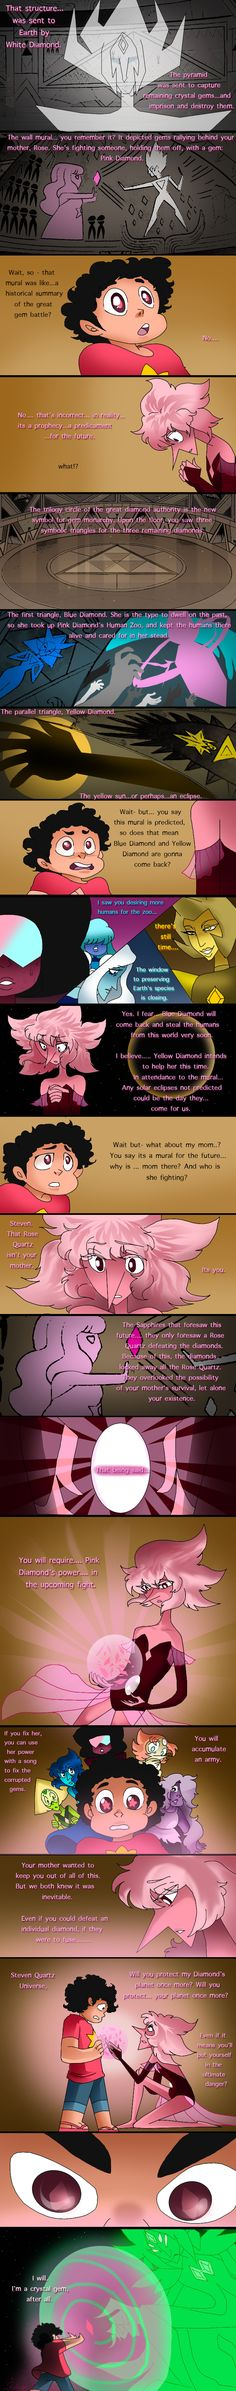 Next~ Oh Hey look what I got around to coloring a continuation of this comic: and a few theories: Pink Pearl / Lion, Pink Diamond, and Rose Quartz (C) Steven Universe&. Steven Universe Theories, Pearl Steven Universe, Pink Diamond Steven Universe, Universe Love, Steven Universe Comic, Fan Art, Deviantart, Steven S, Kingdom Hearts